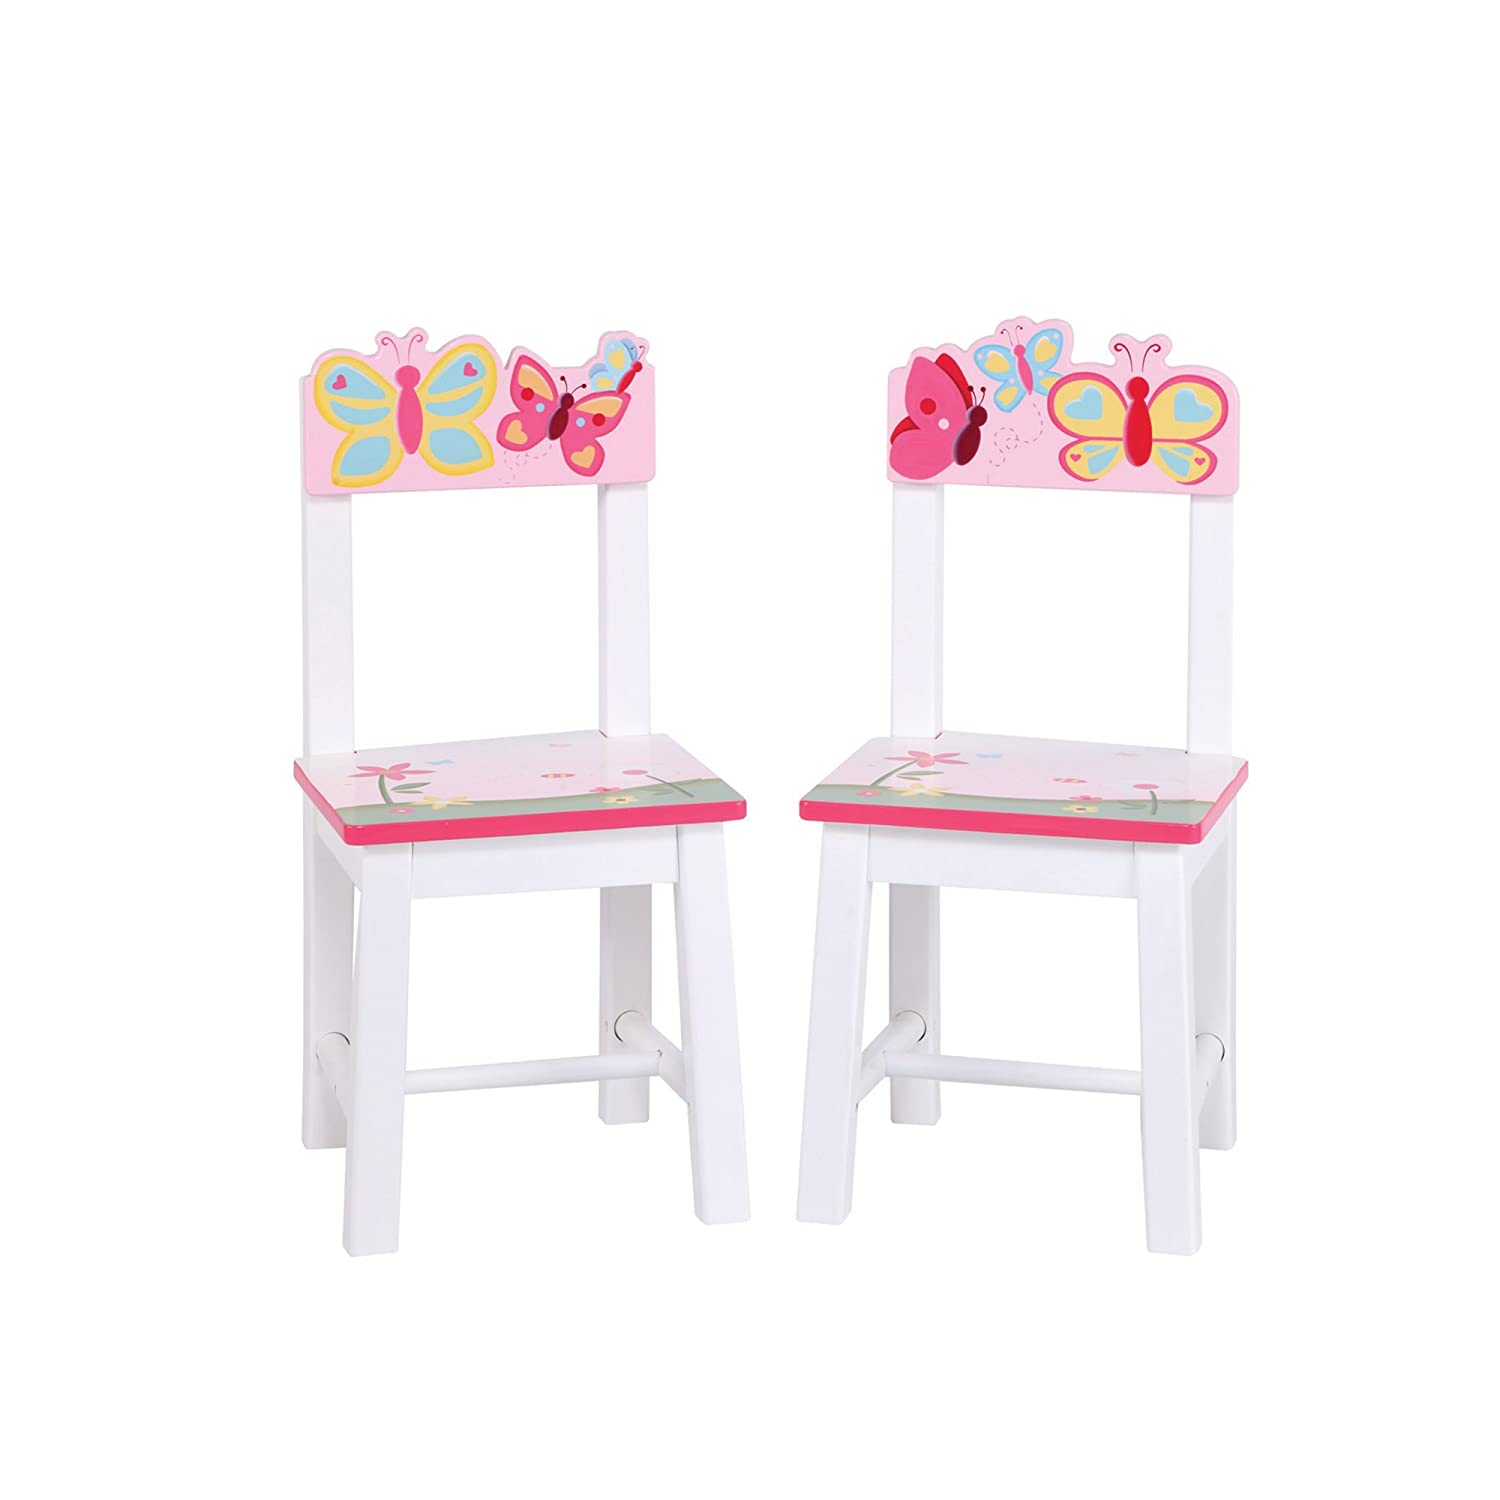 Guidecraft Wood Hand-painted Butterfly Buddies Extra Chairs (Set of 2) G86603 26761